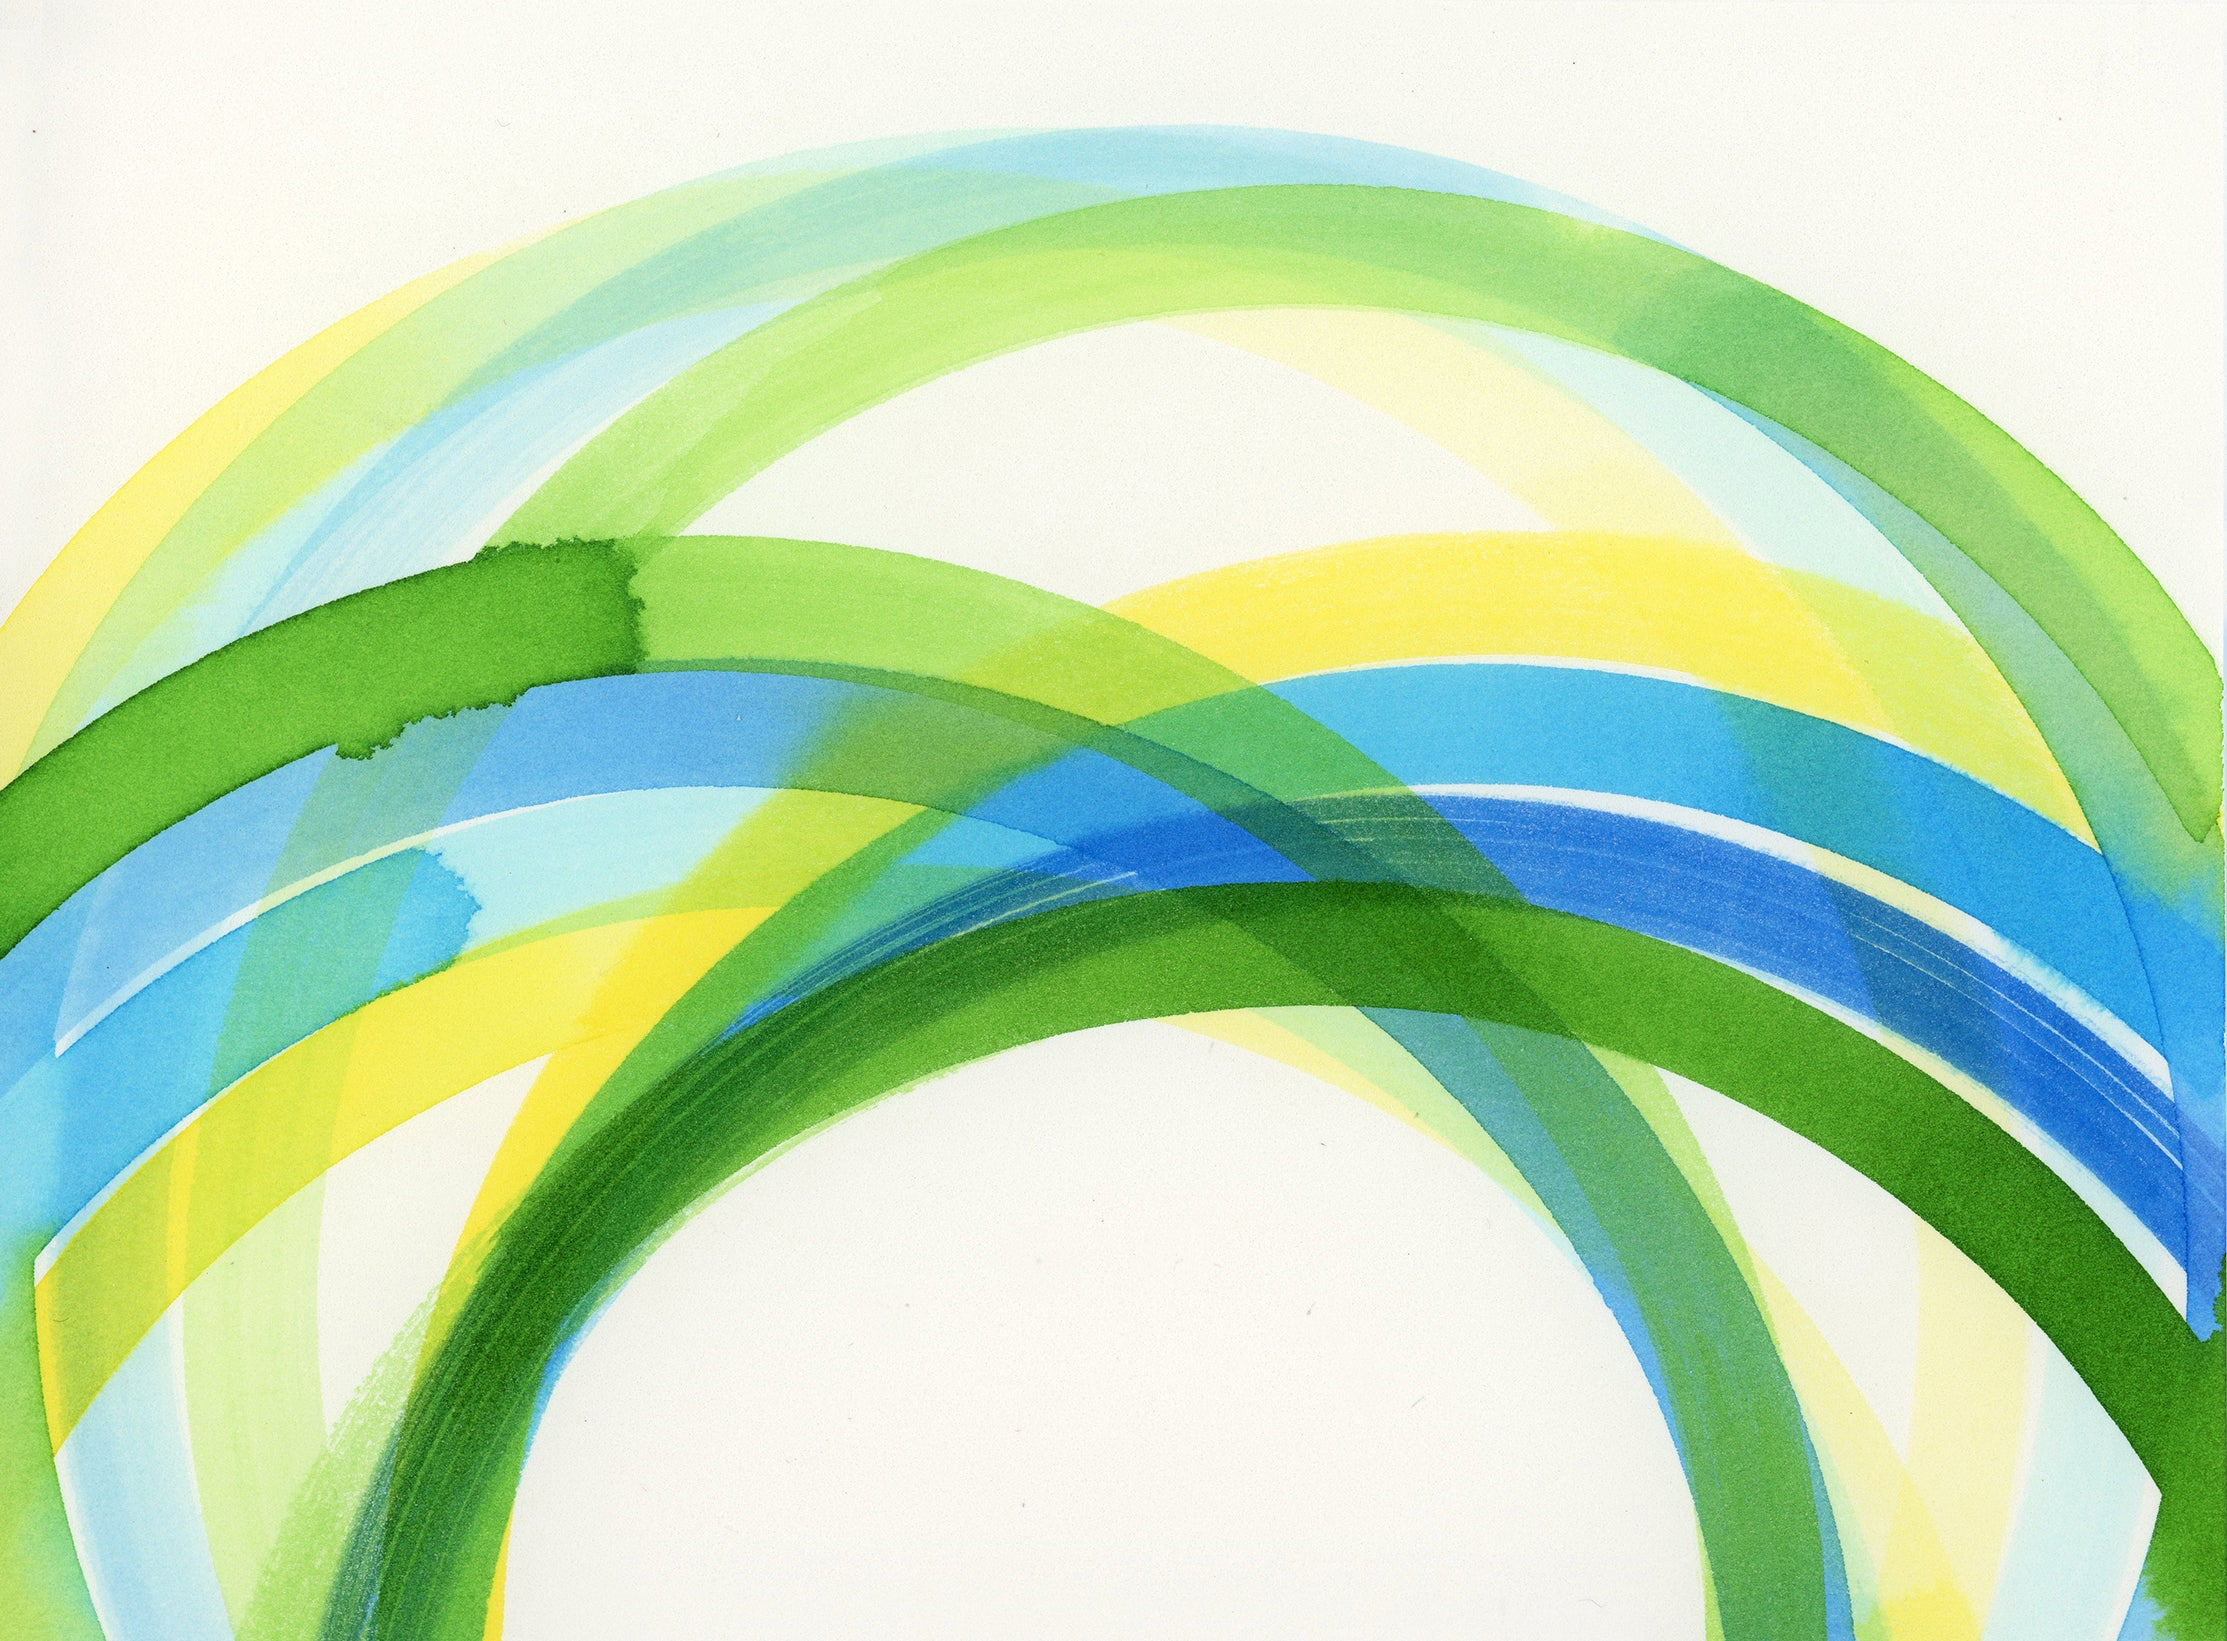 abstract painting of interlocking yellow, green, blue circles detail